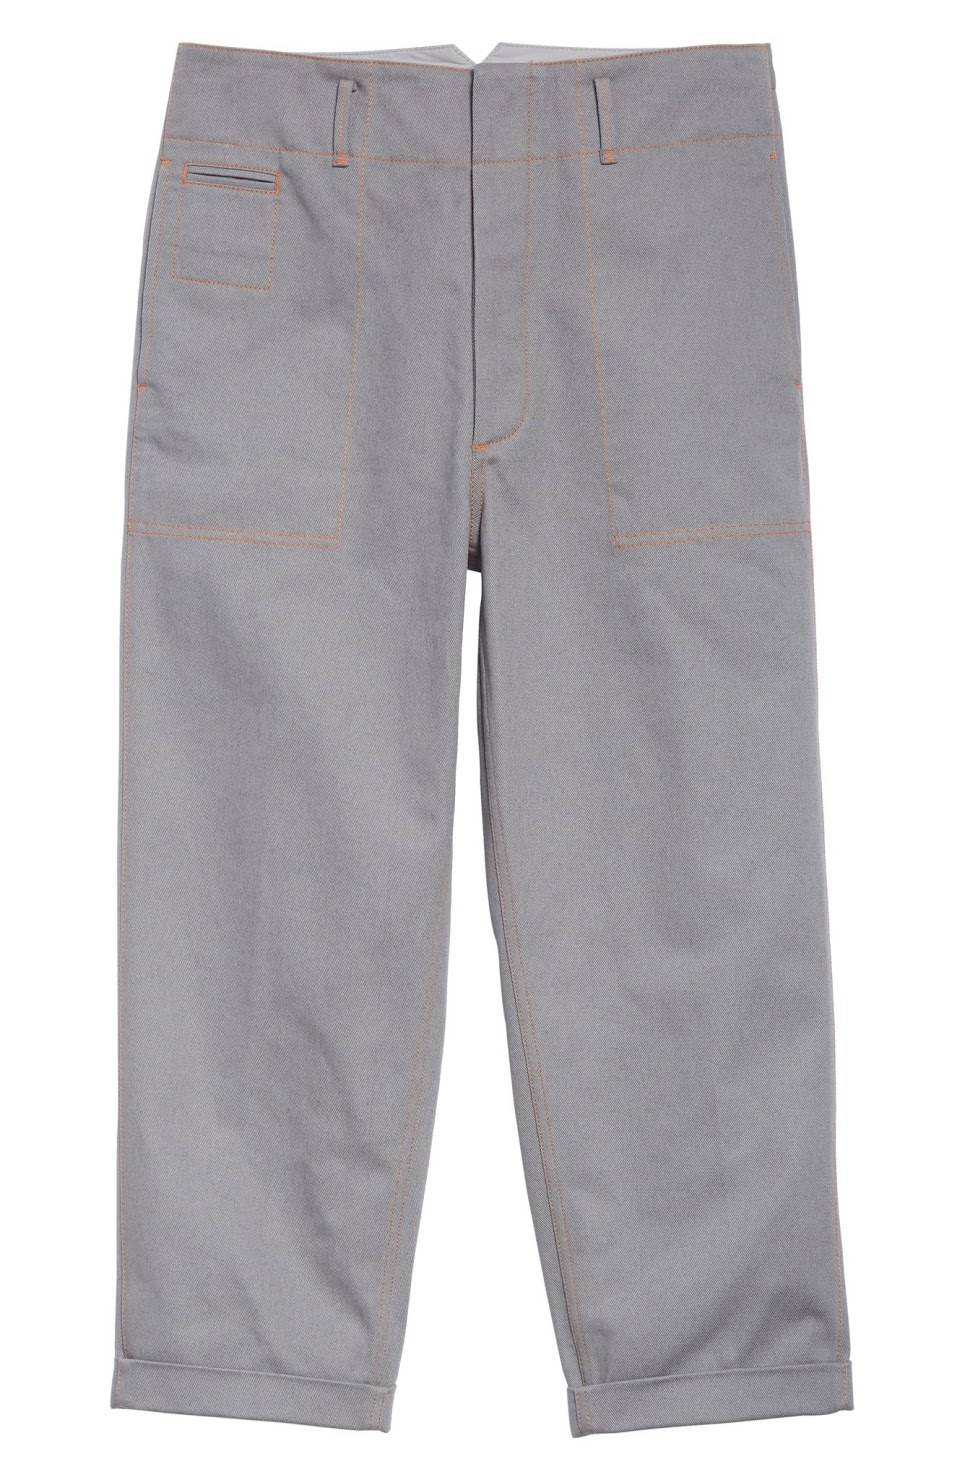 Marni_Cotton Drill Pants_Grey_$690.jpeg